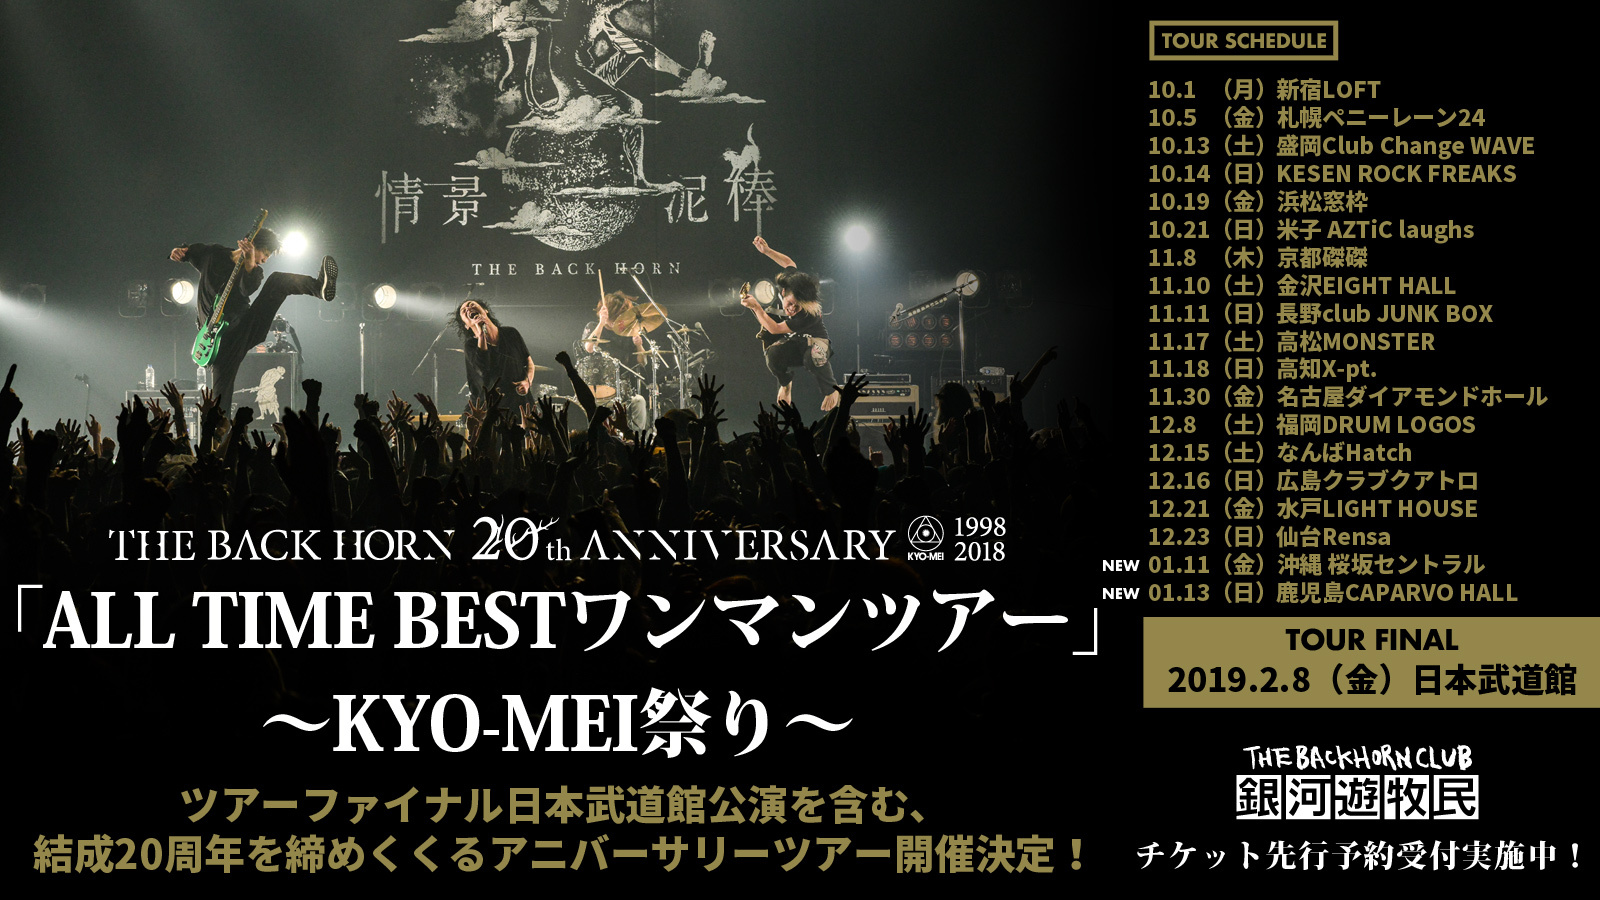 THE BACK HORN 20th Anniversary「ALL TIME BESTワンマンツアー」〜KYO-MEI祭り〜日本武道館公演